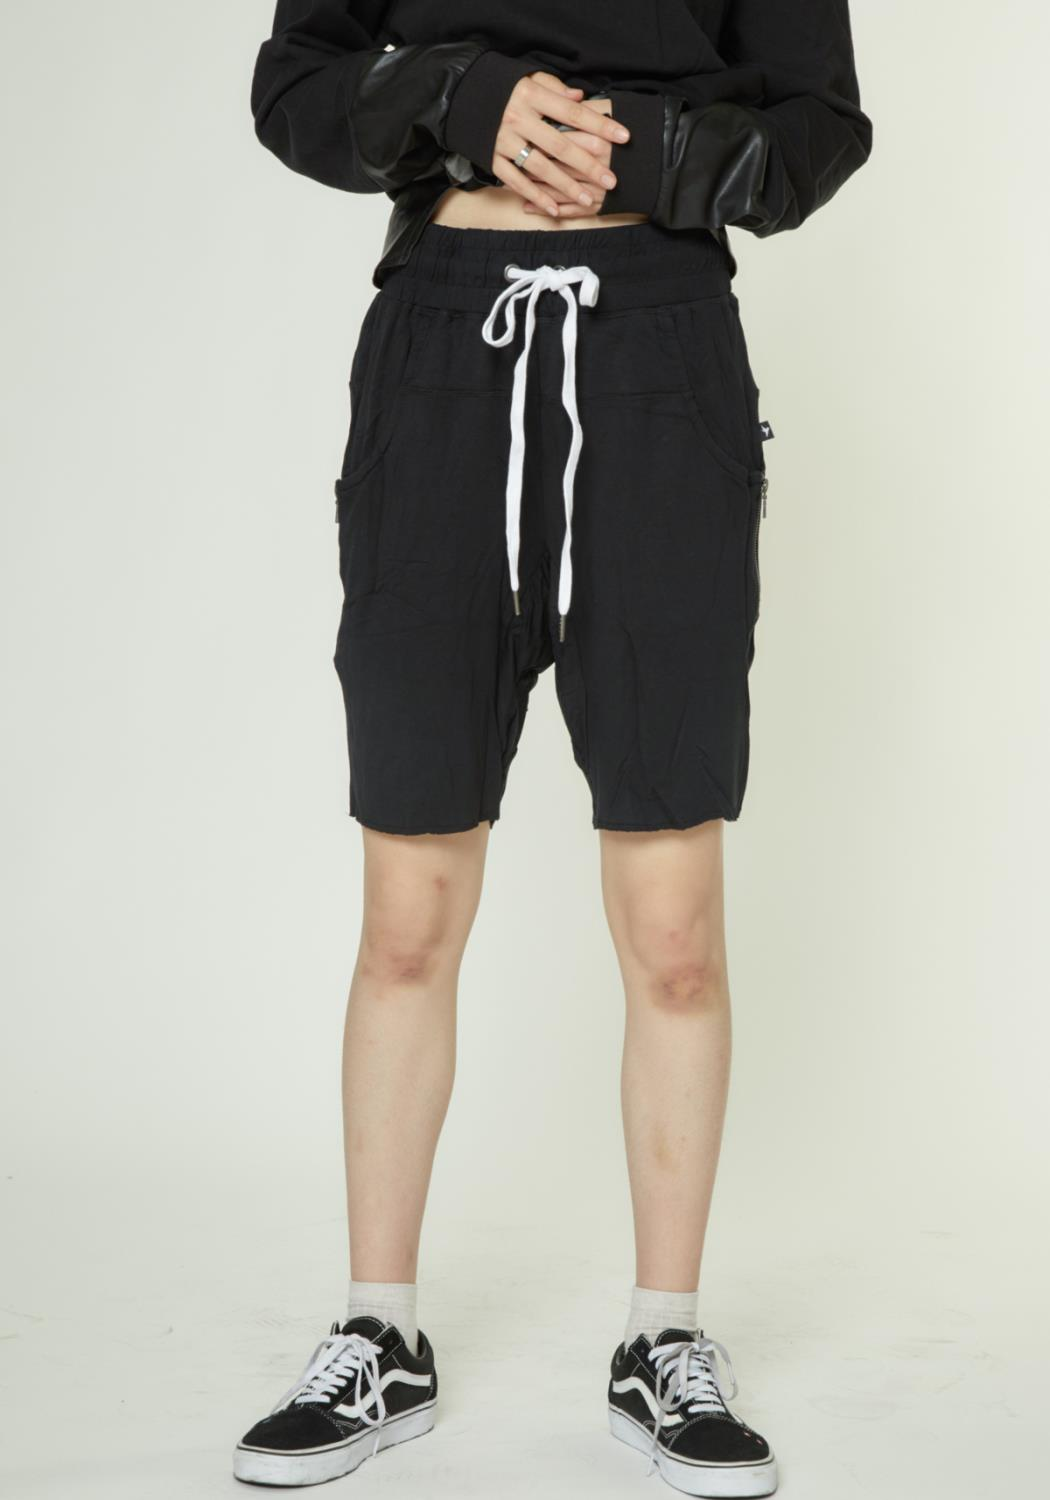 DROP CROTCH SHORTS WITH ZIPPER POCKETS